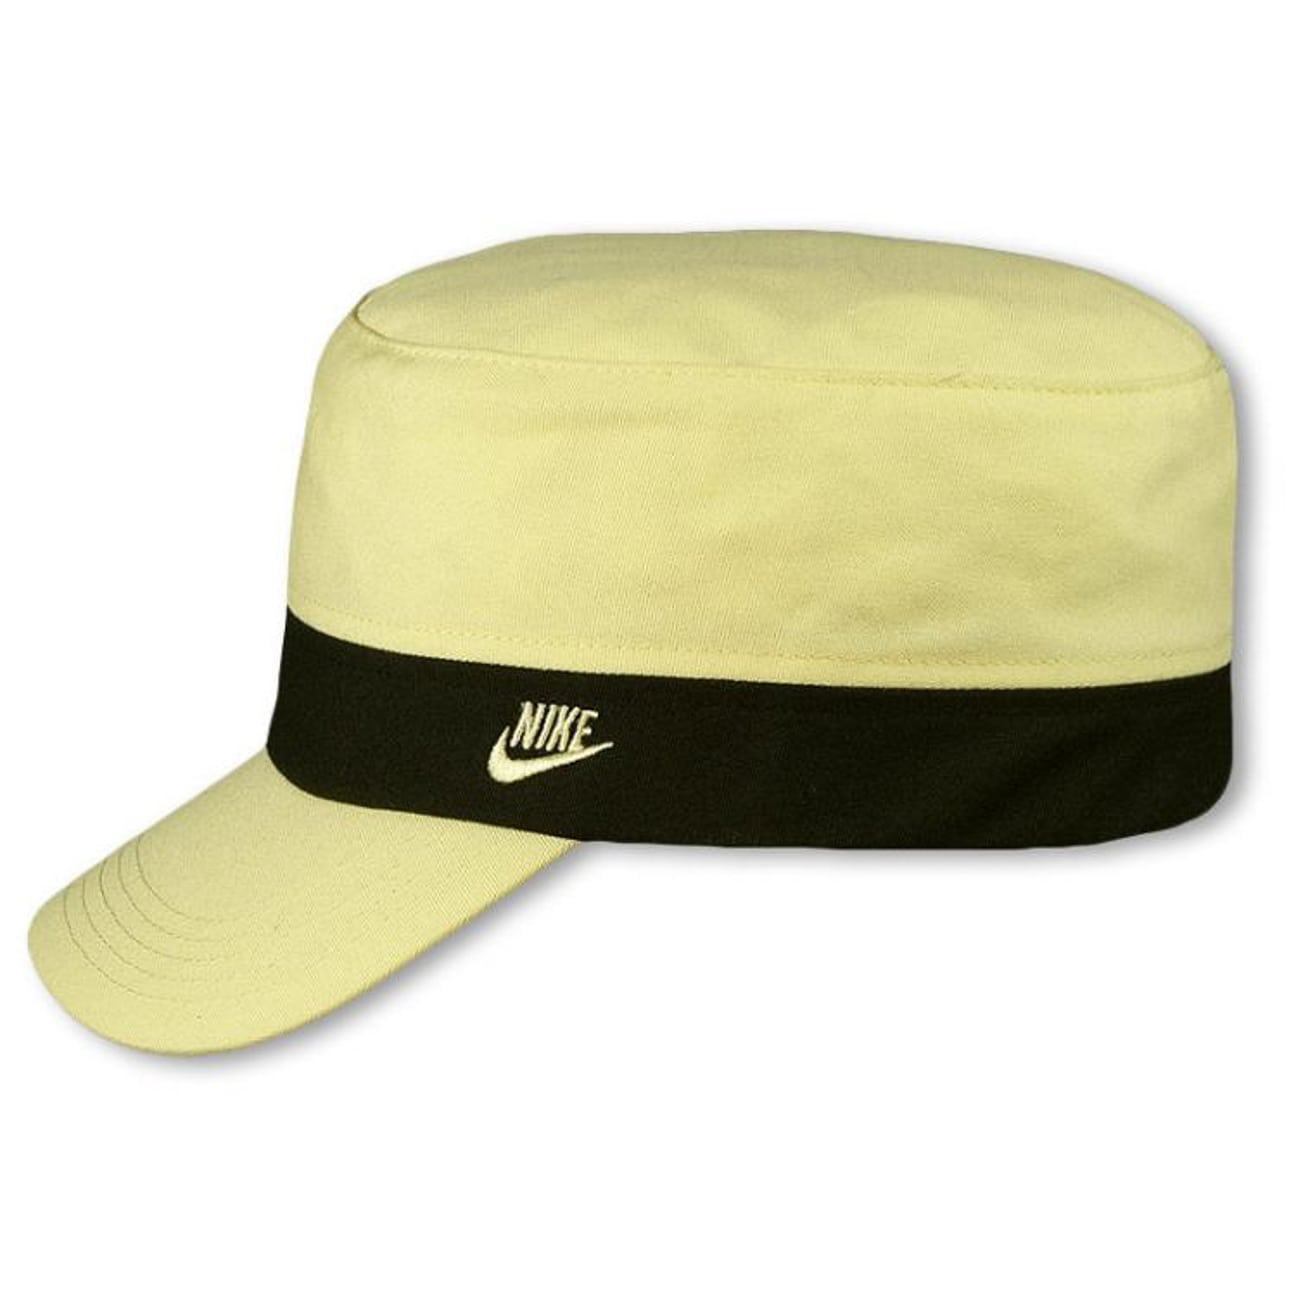 04a353f25a4 ... Kids Sunny Army Cap by Nike - yellow 1 ...